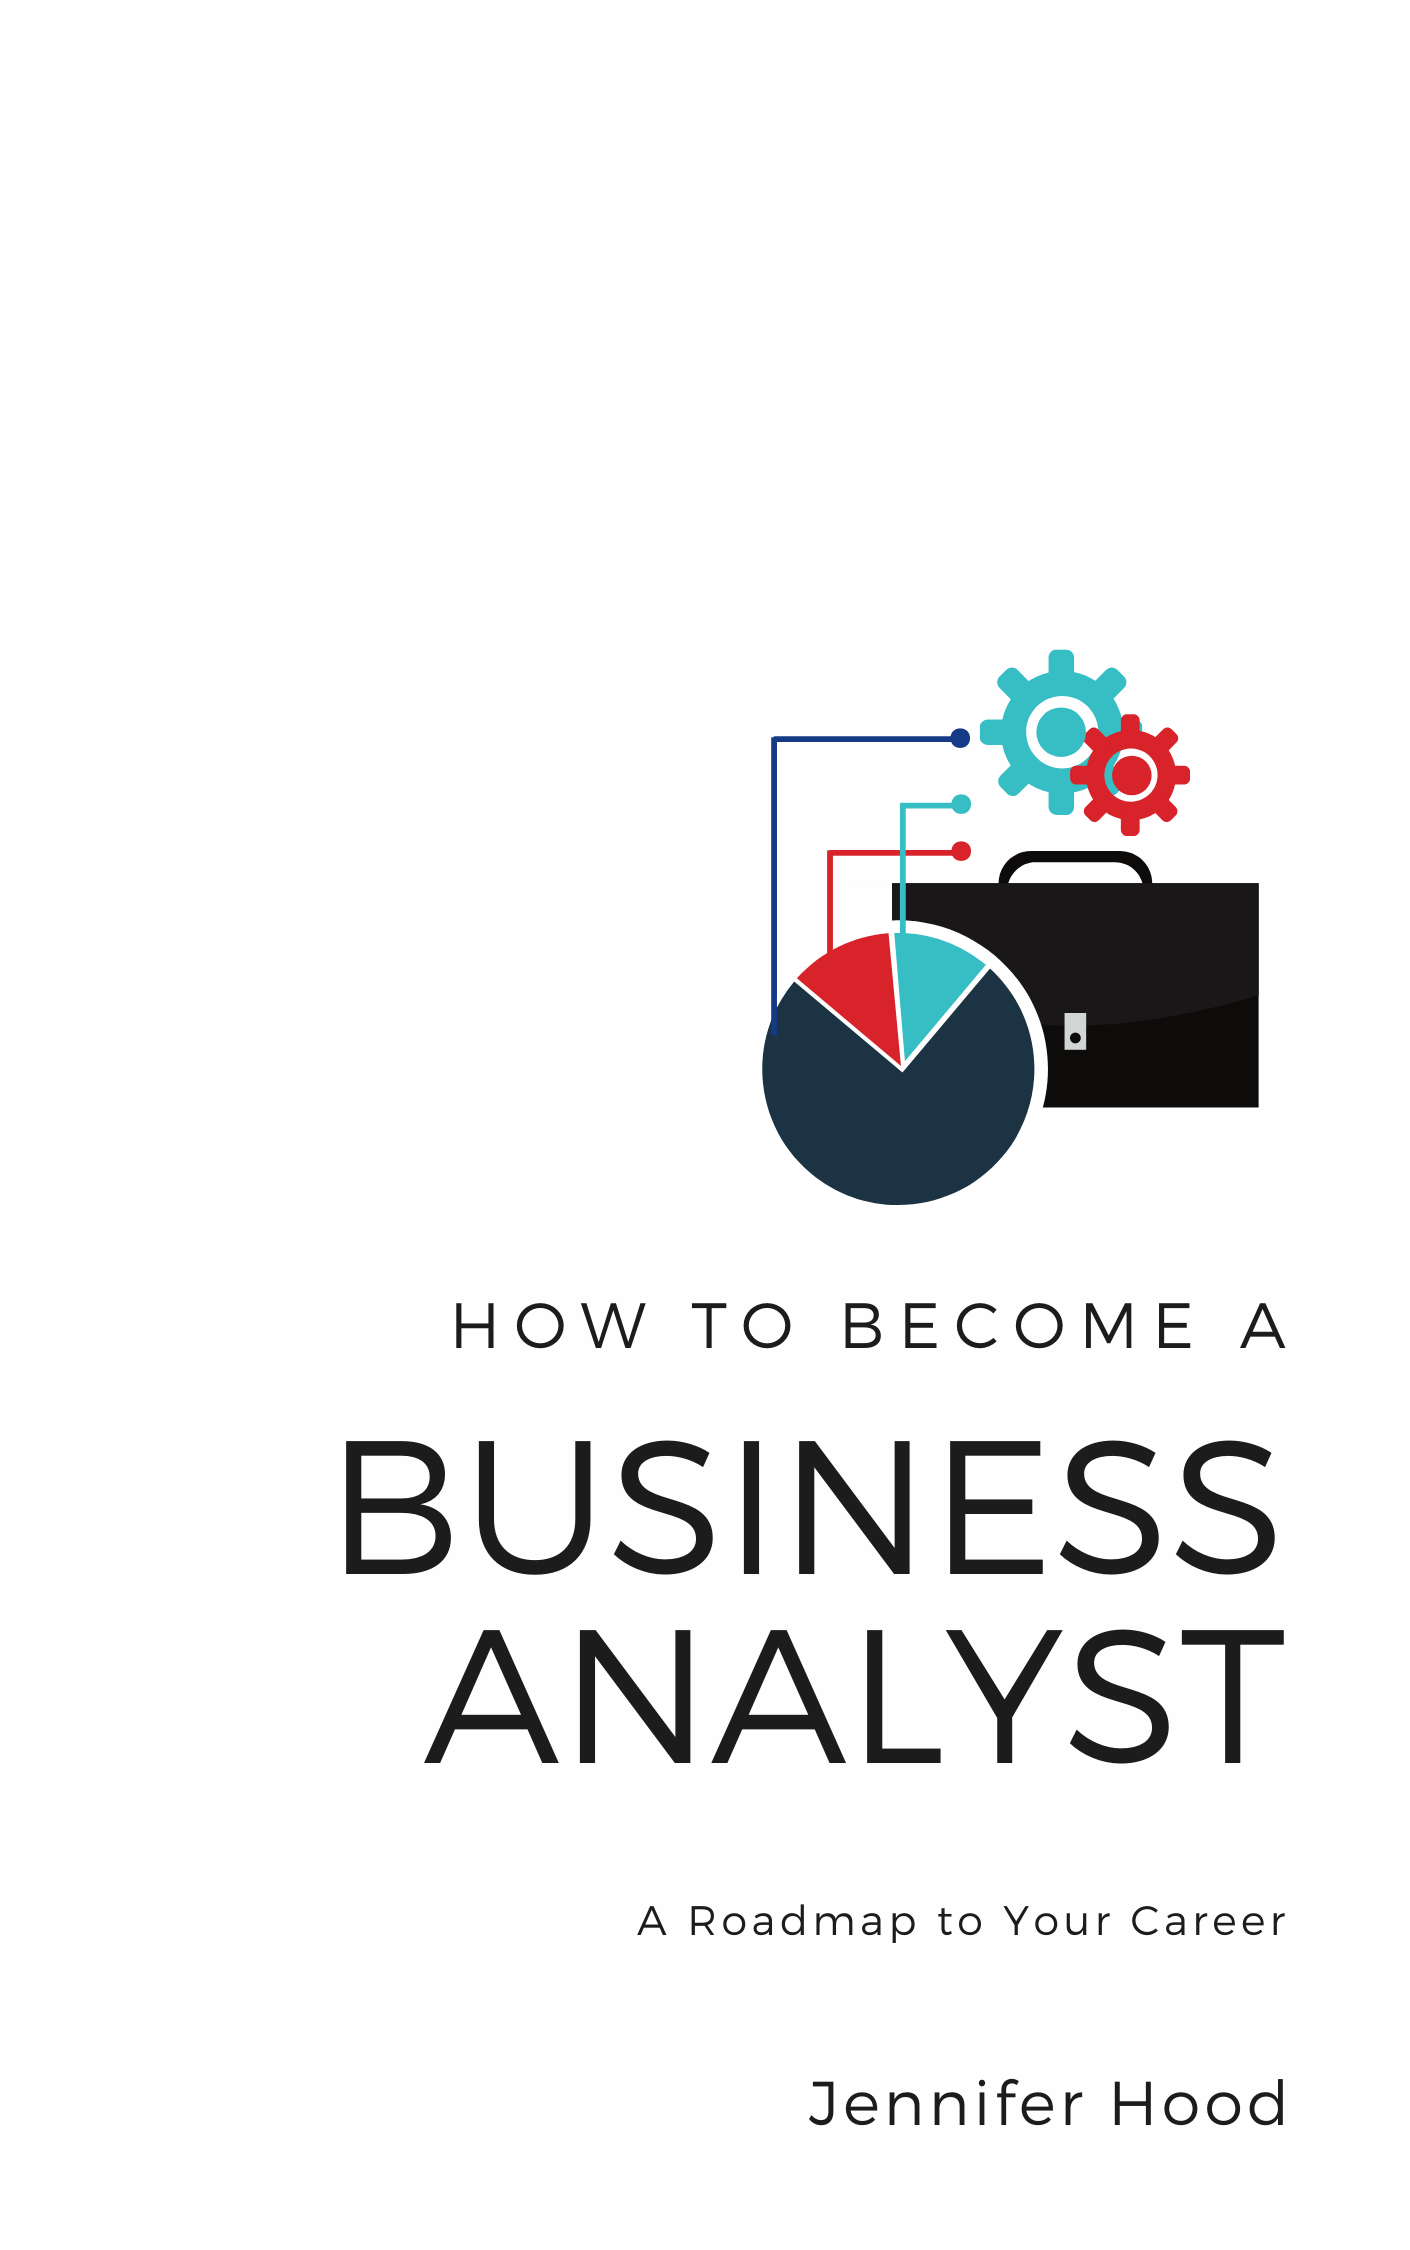 How to Become a Business Analyst